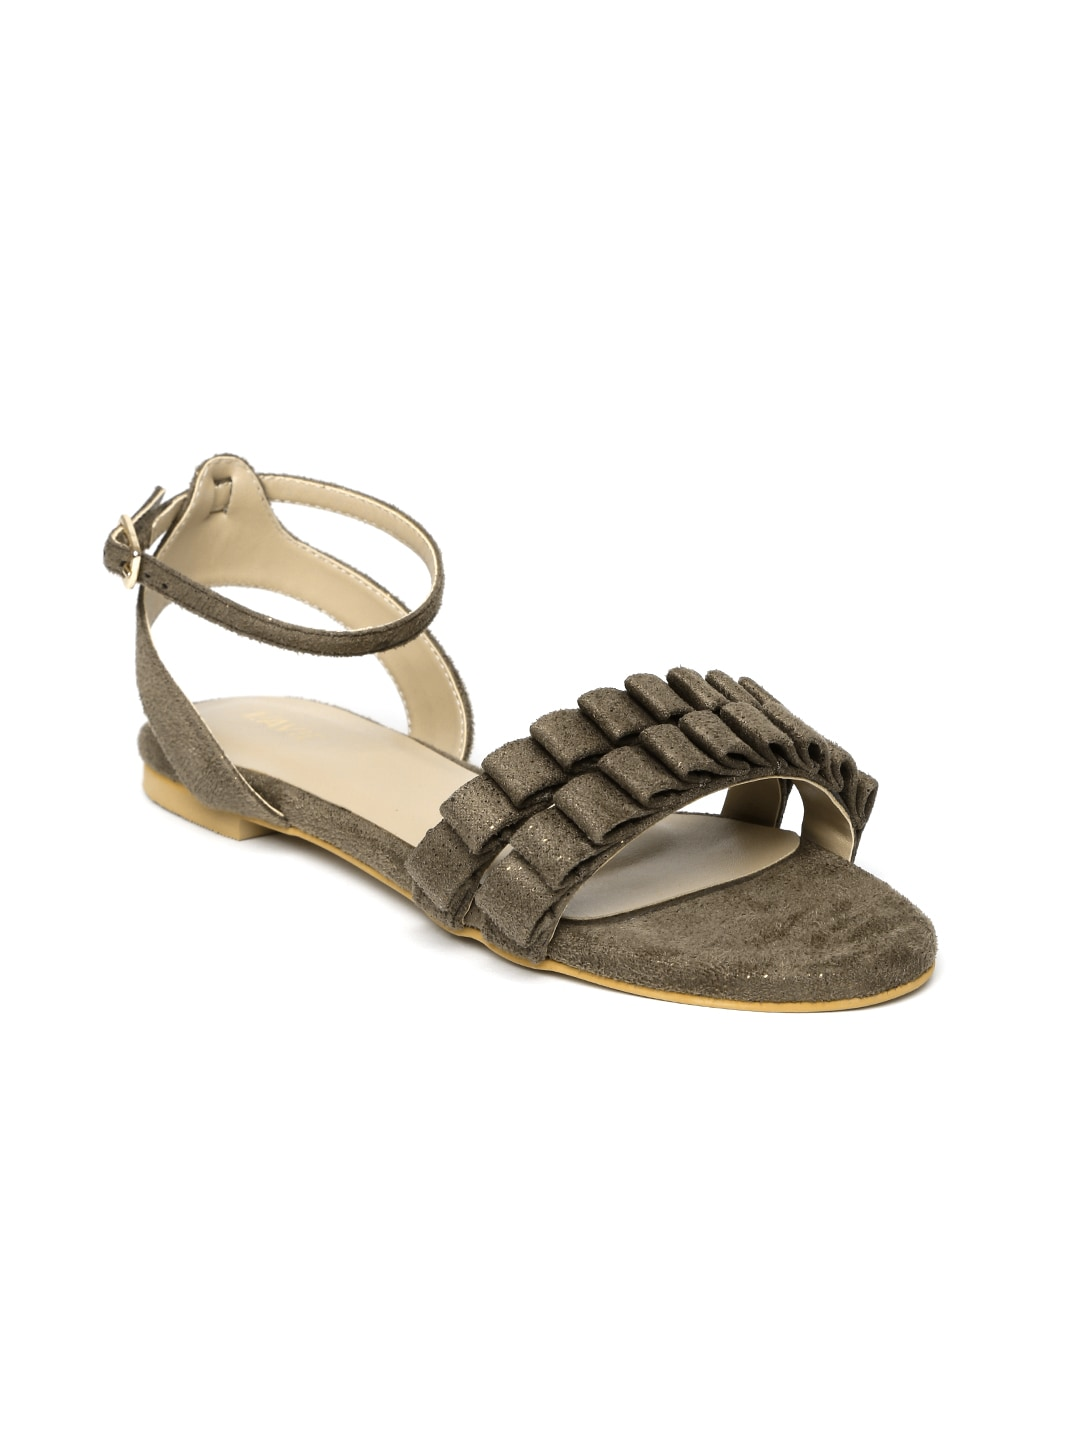 d62594ef184 Casual Shoes For Women - Buy Women s Casual Shoes Online from Myntra